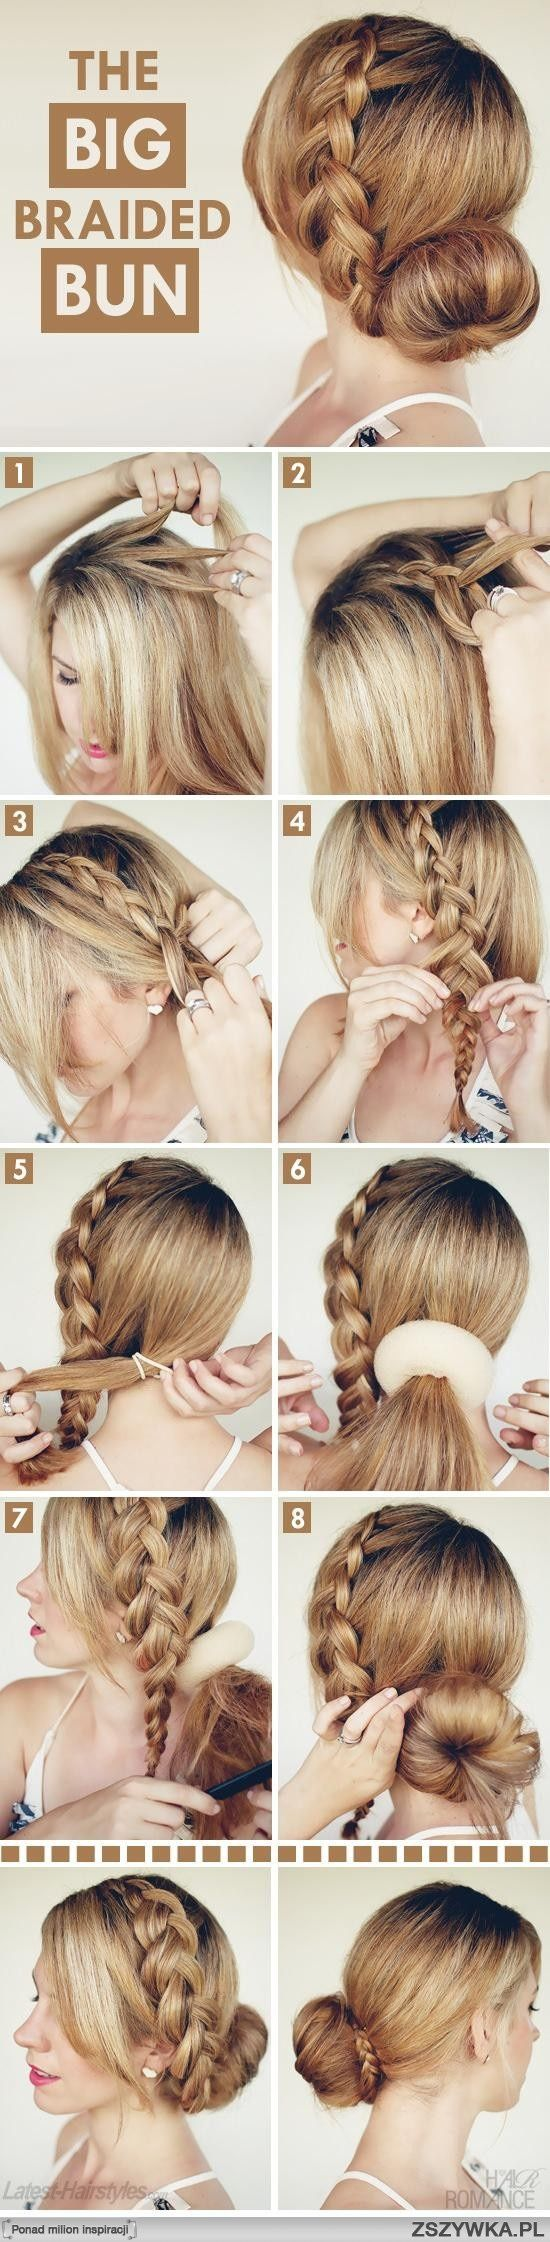 The Big Braided Bun. I'm soo going to try that if I have time